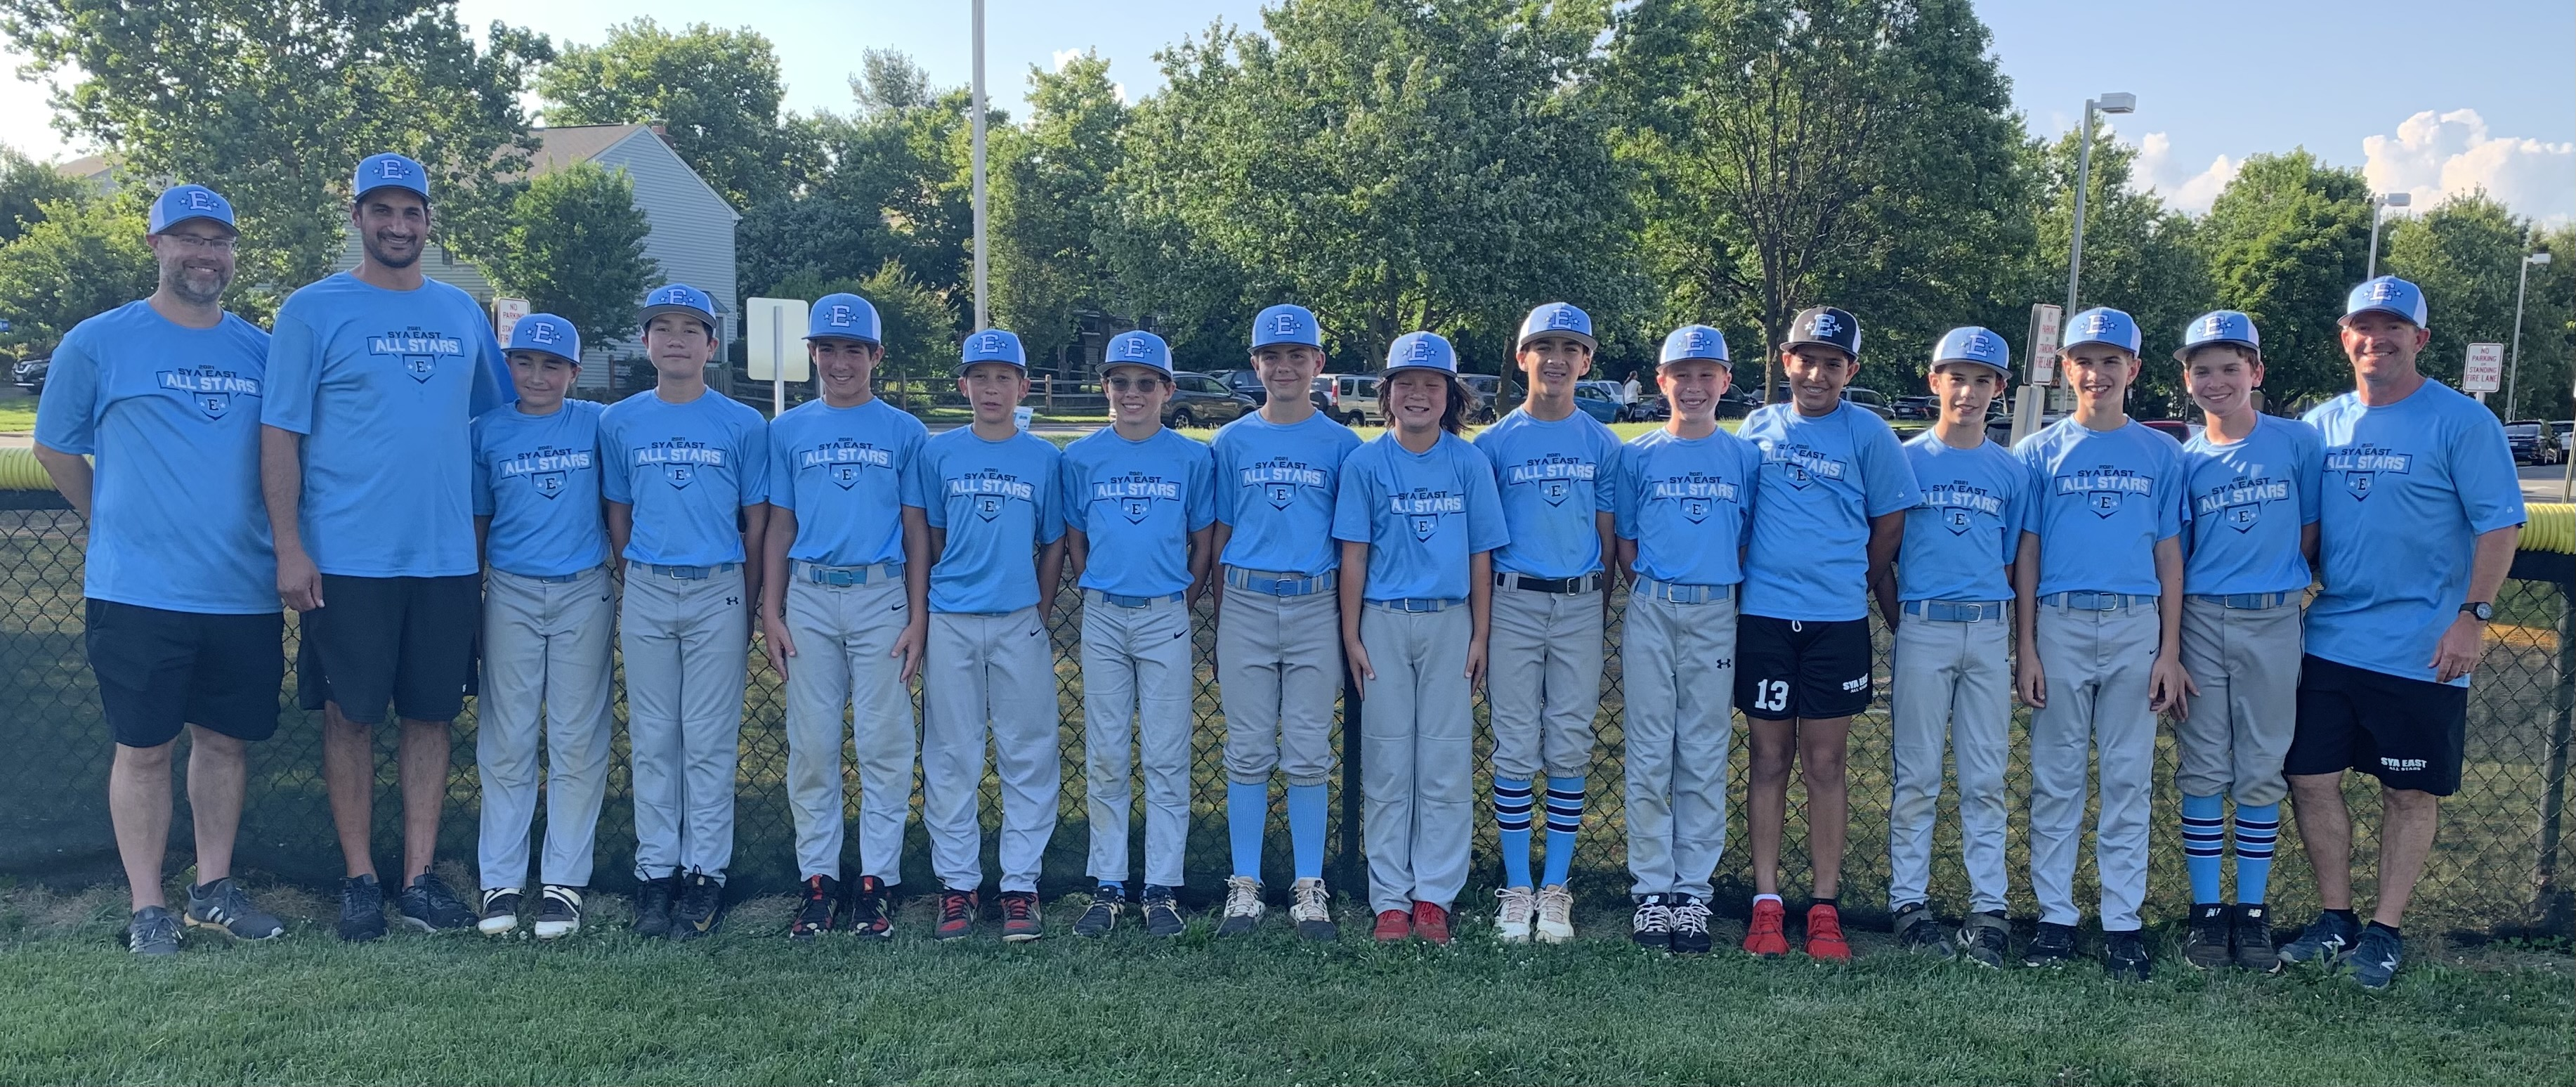 2021 All Stars - SYA East Majors Heads to States in Vienna!